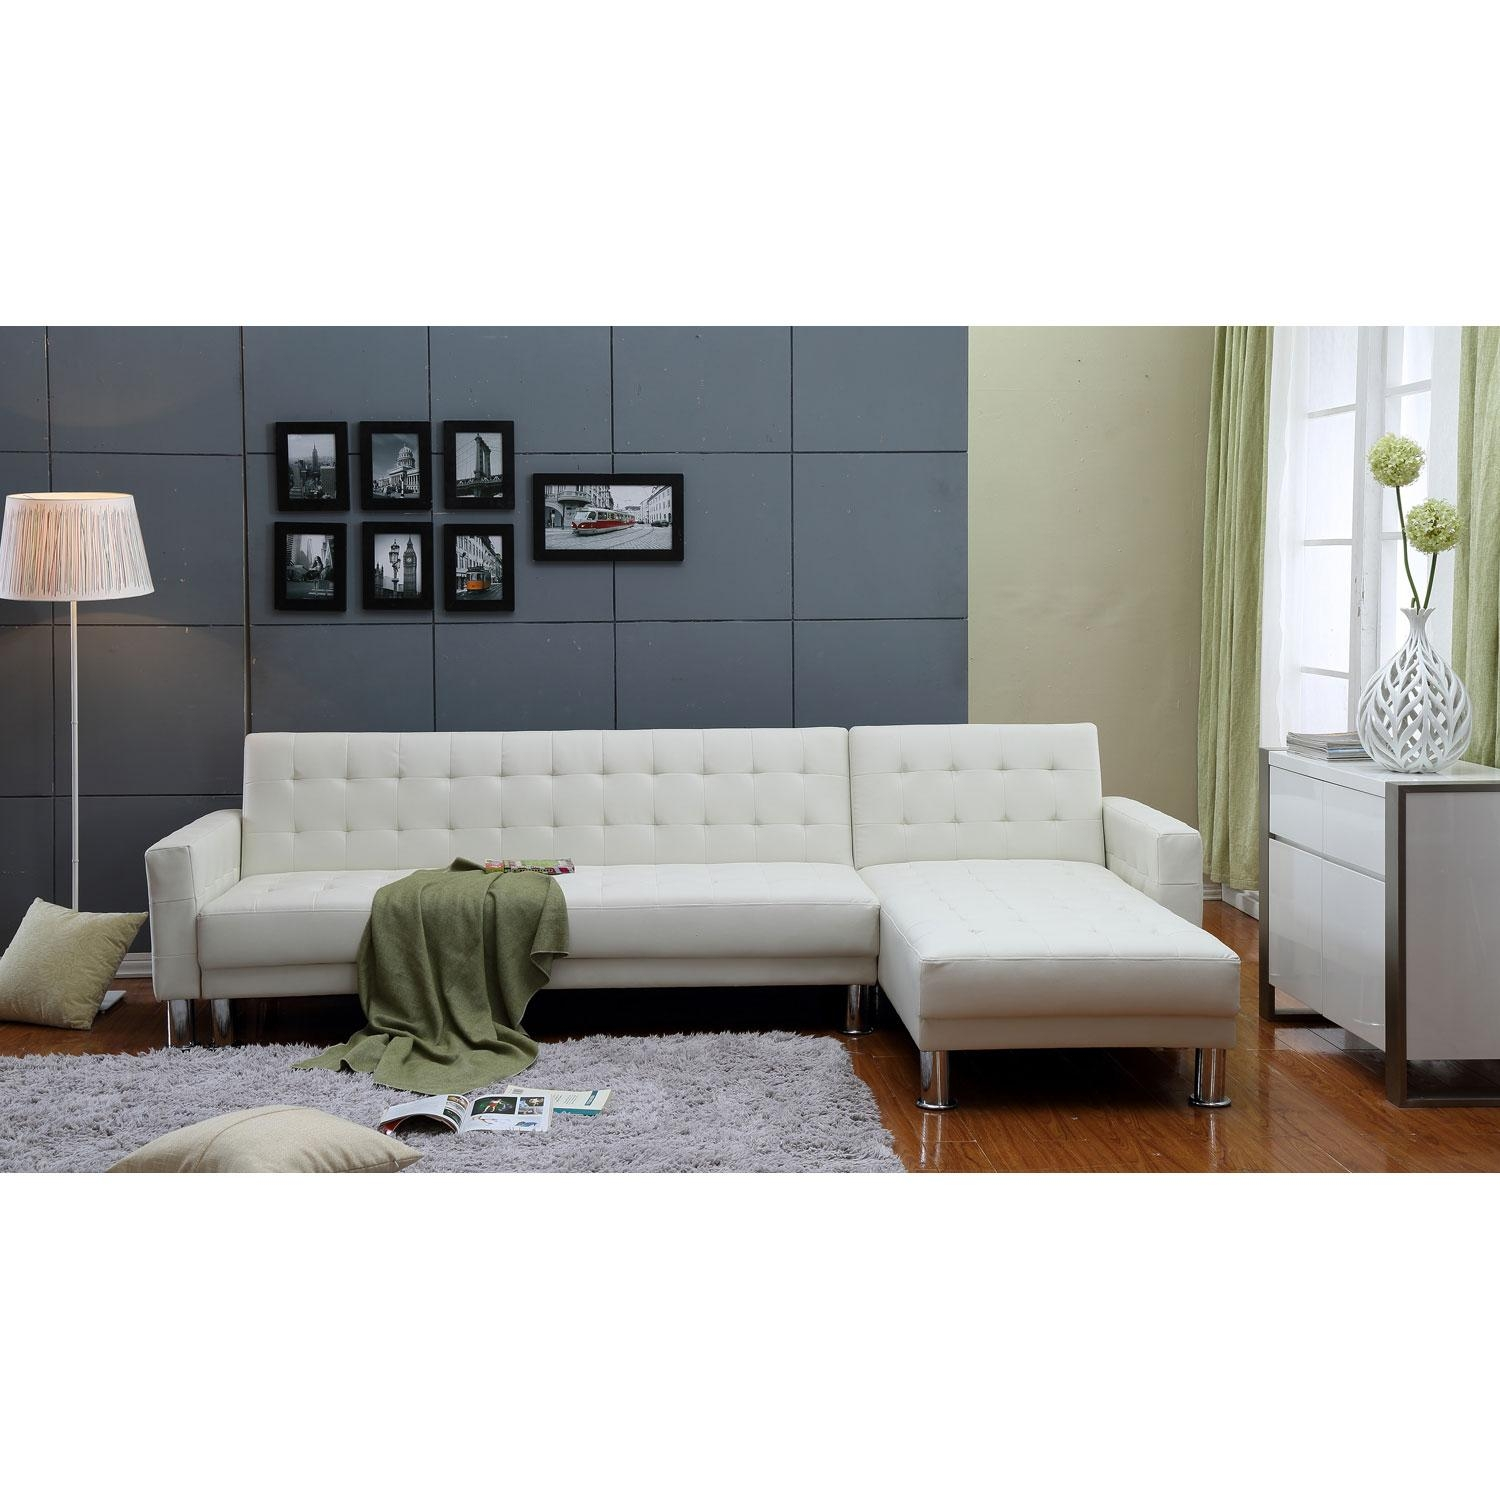 Sofas : Marvelous Large Sectional Couch 2 Piece Sectional With Regarding Small 2 Piece Sectional Sofas (View 23 of 23)